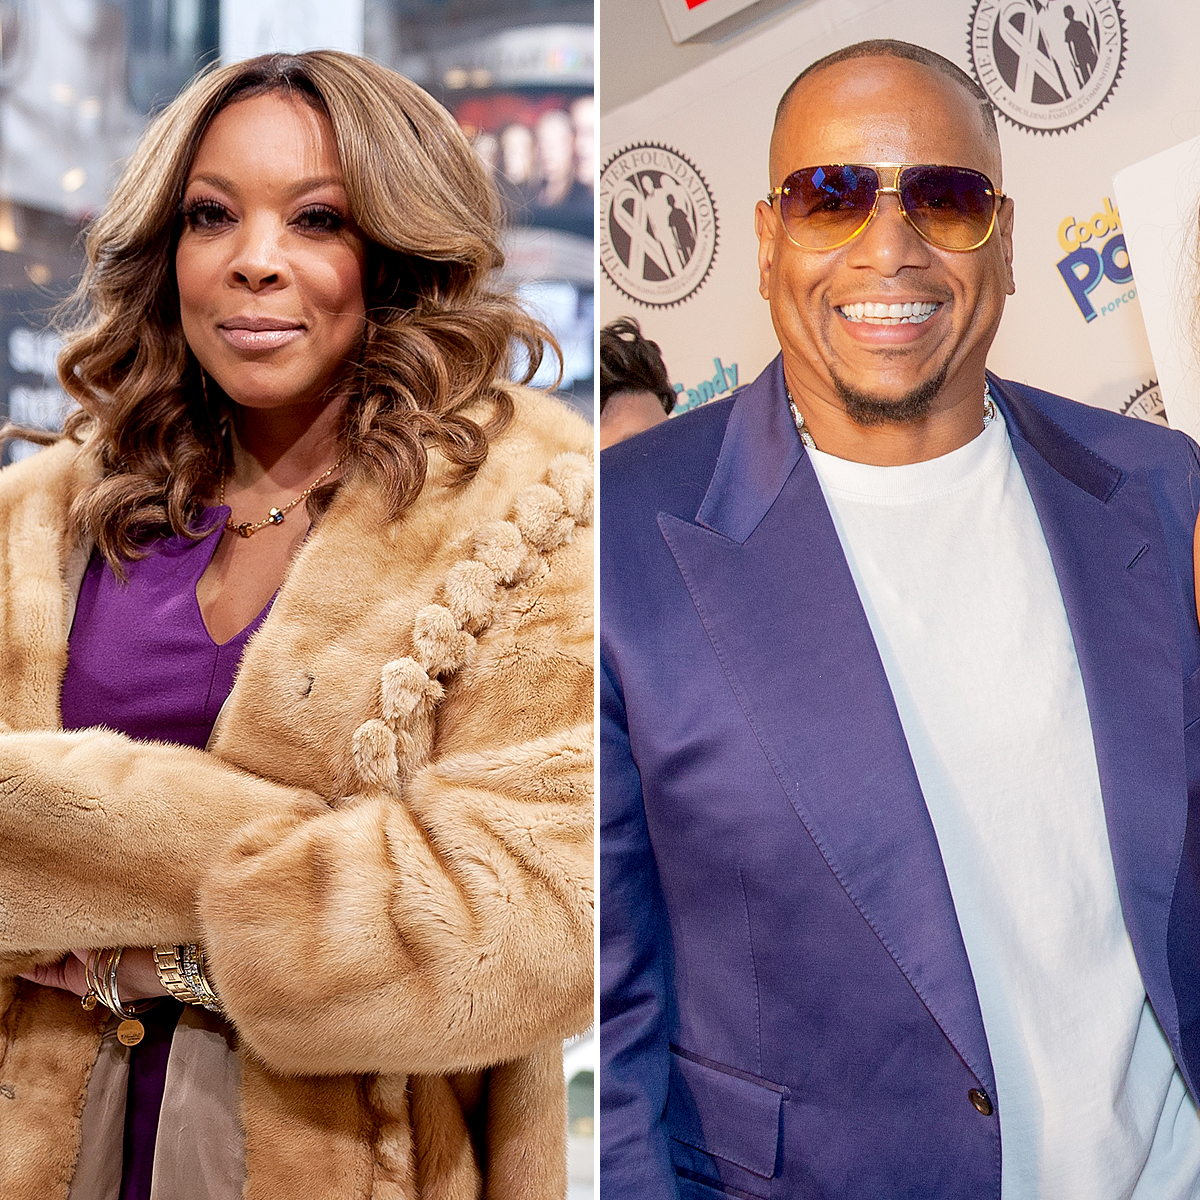 e3a253e70fc2 Wendy Williams  Estranged Husband Kevin Hunter to Exit Talk Show